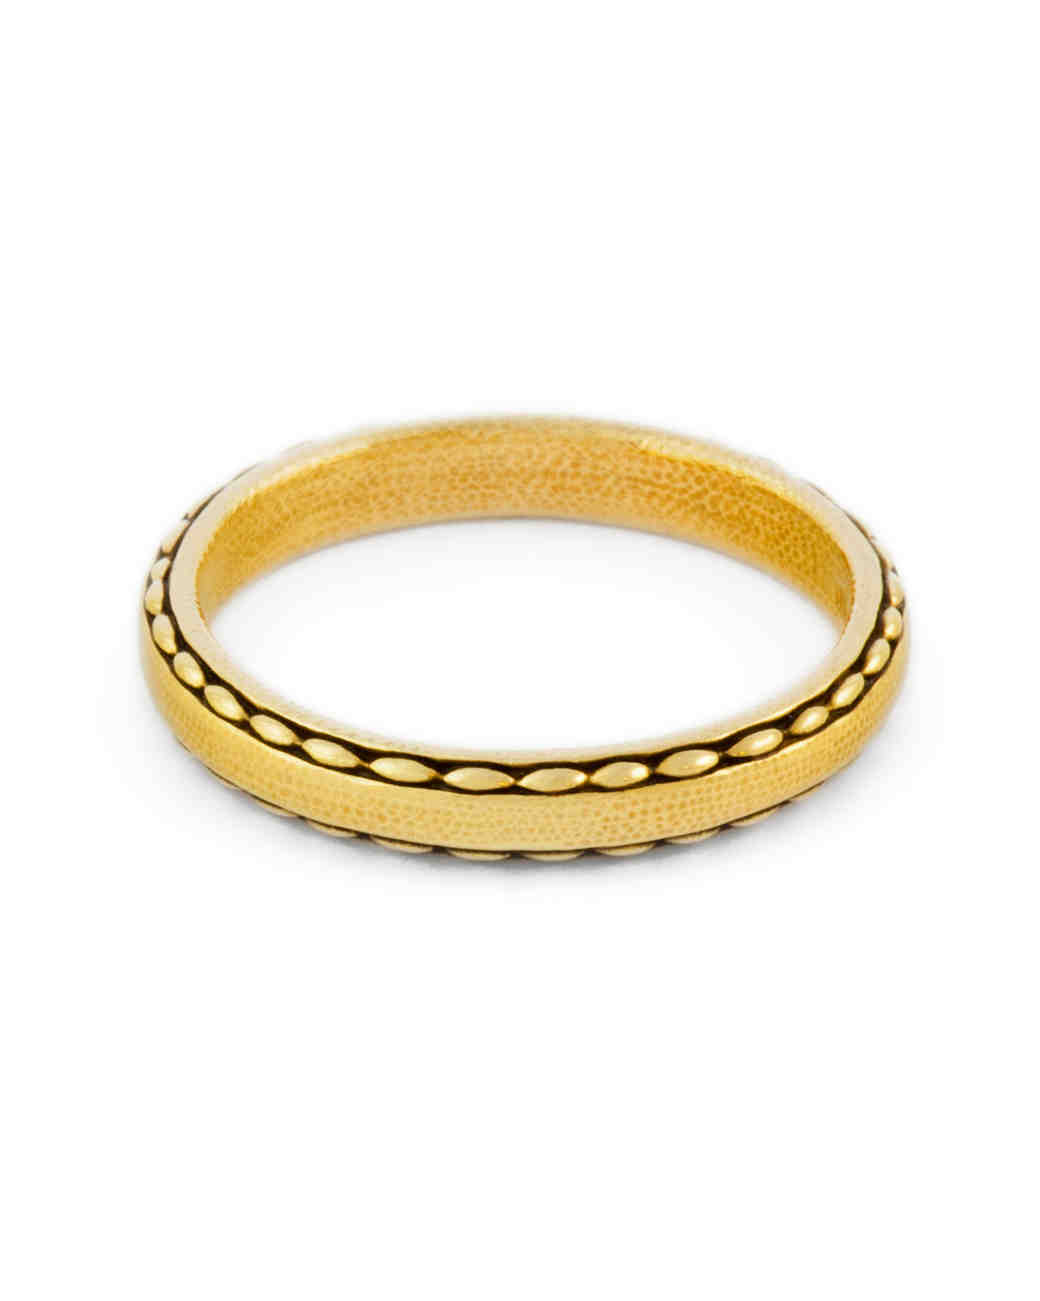 gold-wedding-bands-alex-sepkus-gold-band-replacement-0415.jpg